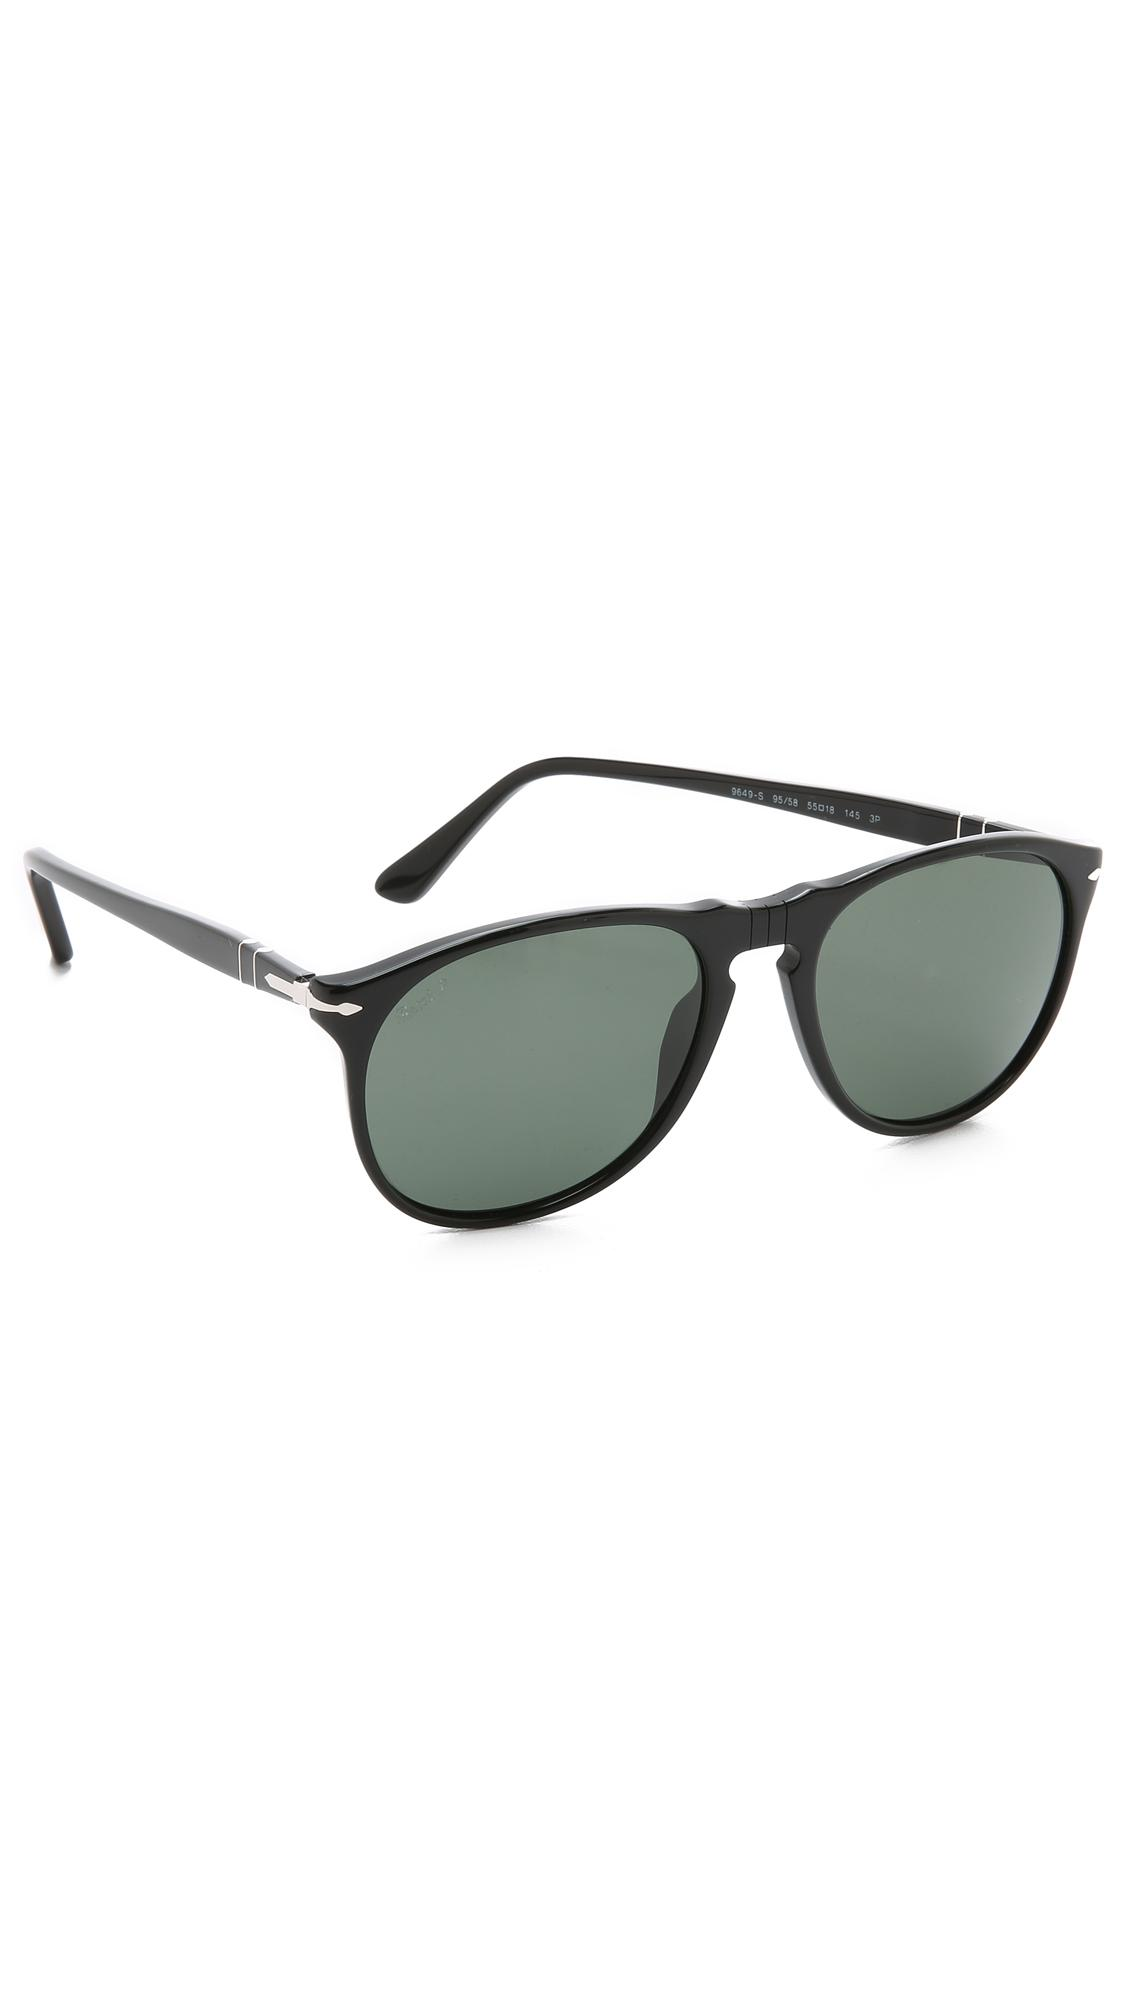 ac4d200cba Persol Polarized Classic Sunglasses in Black for Men - Lyst